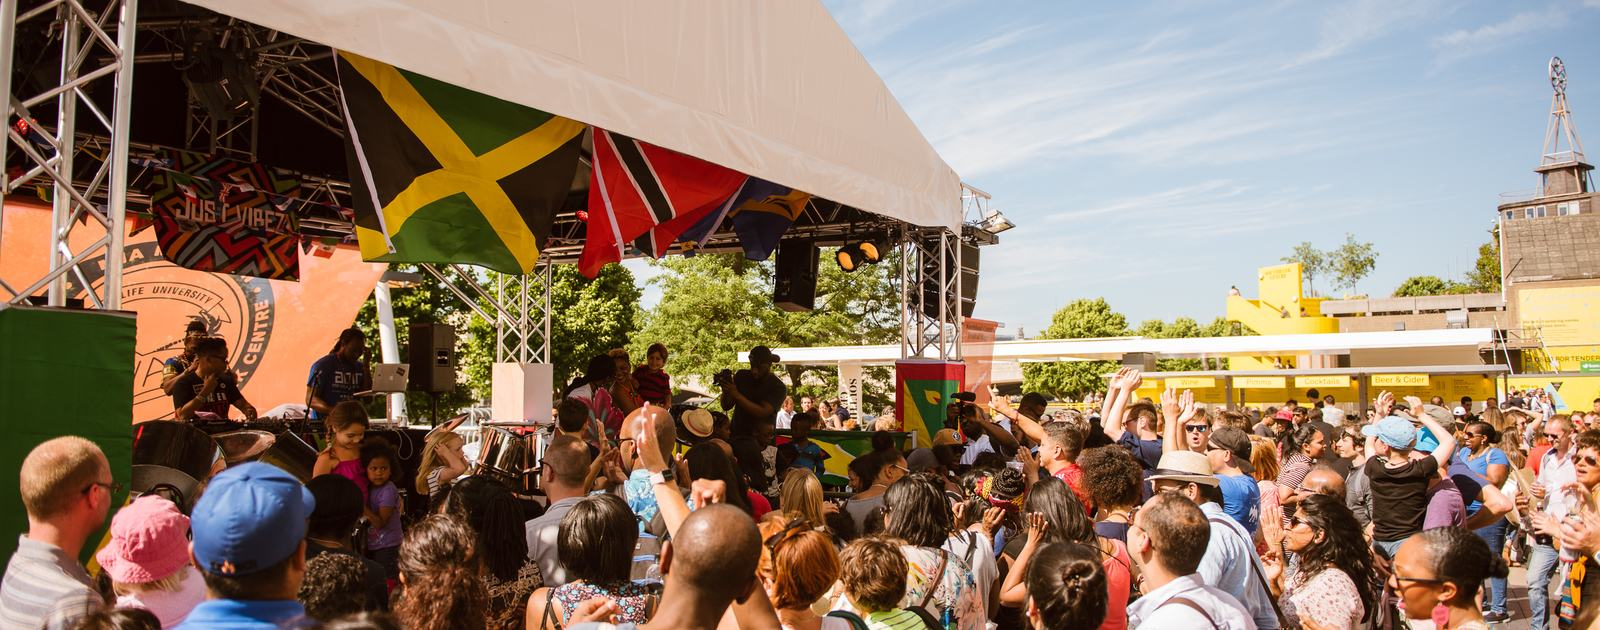 Crowds on Riverside Terrace for Just Vibez Carnival at M.I.A.'s Meltdown